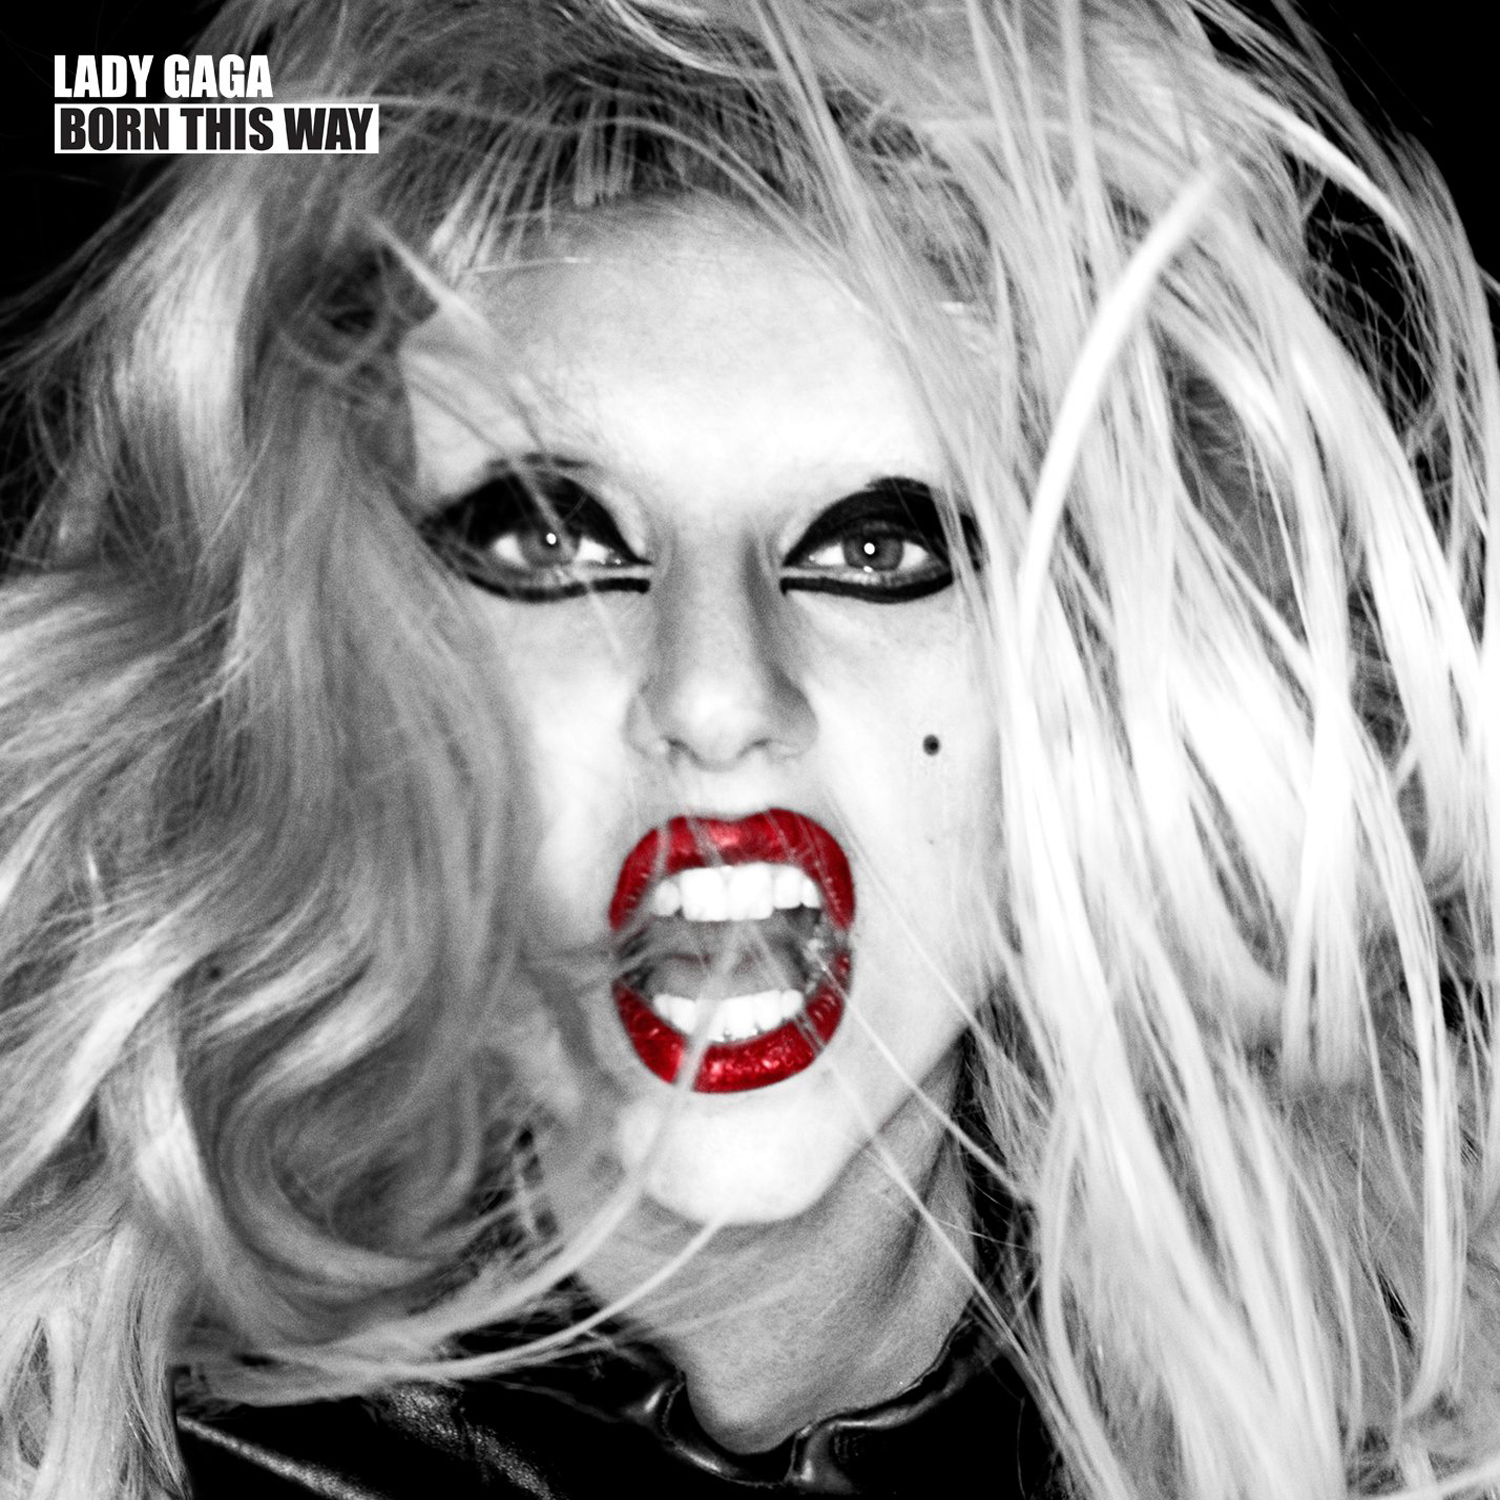 http://1.bp.blogspot.com/-wtC__nBjaRI/TdE1a4snGOI/AAAAAAAAAC4/lO2L1iXShc0/s1600/Lady-GaGa-Born-This-Way-Official-Album-Cover-Deluxe-Edition.jpg